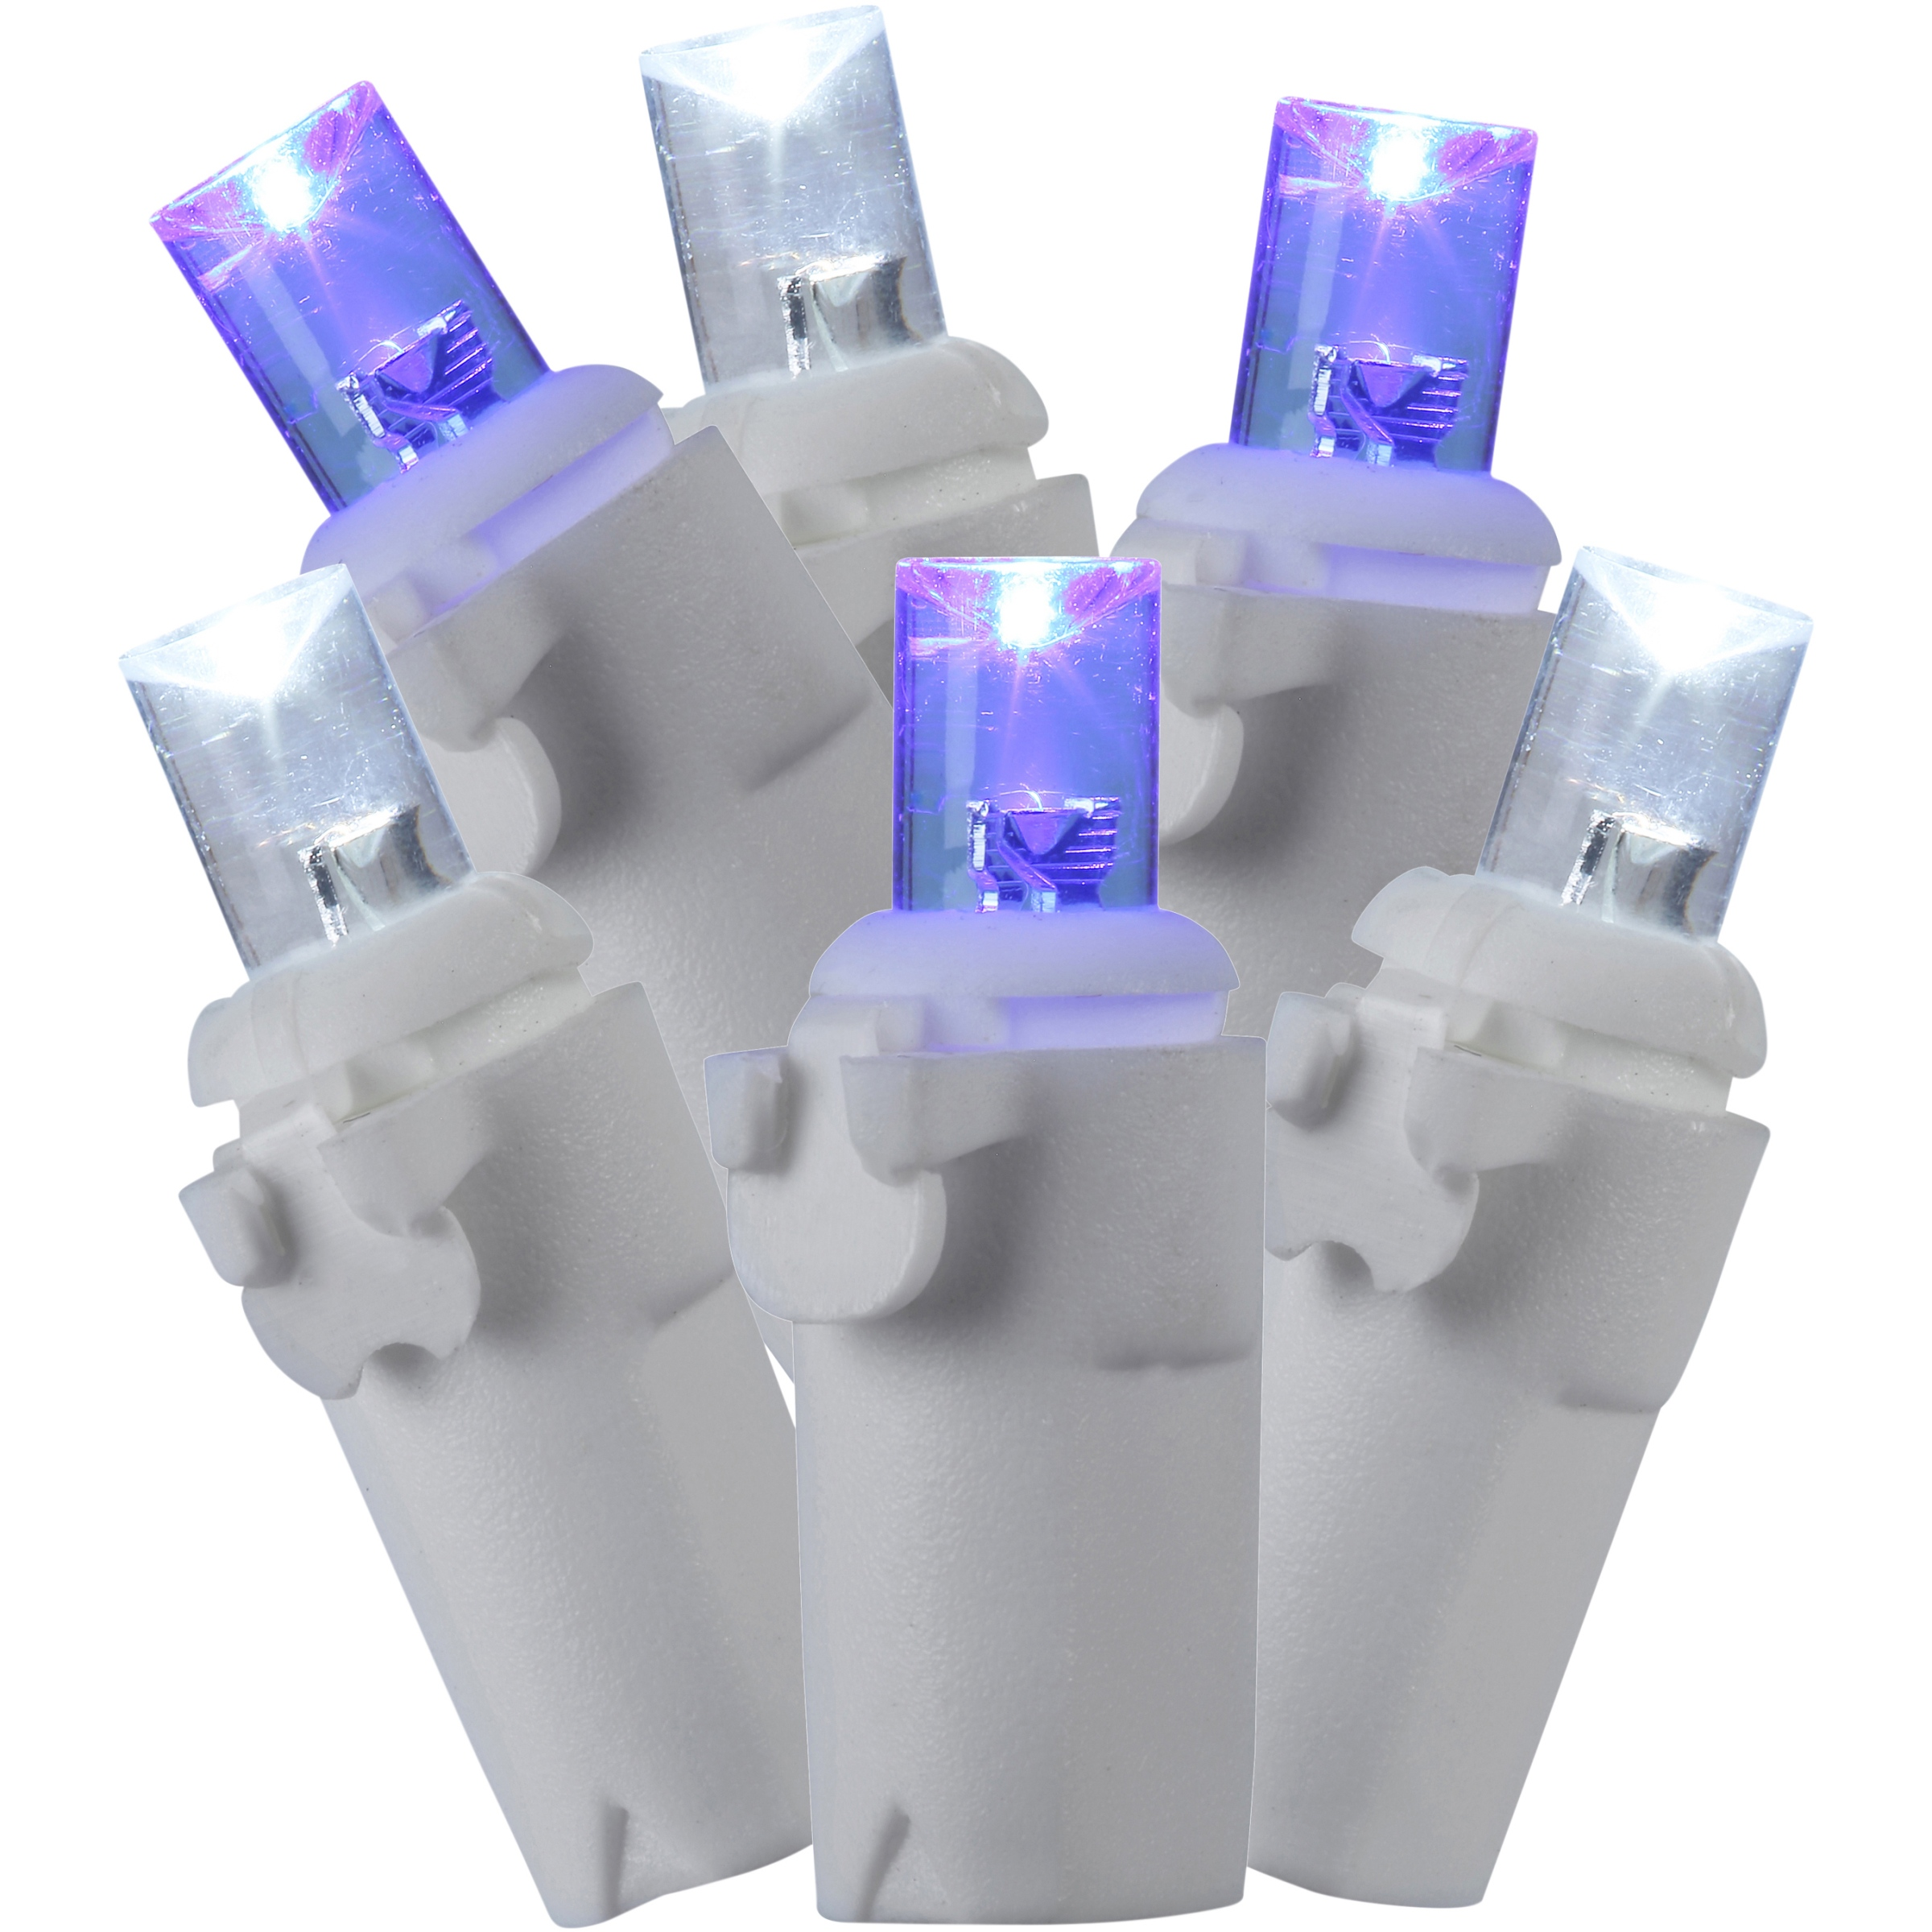 Holiday Time 70 Random Twinkle LED Icicle Lights Cool White & Blue Indoor or Outdoor Use